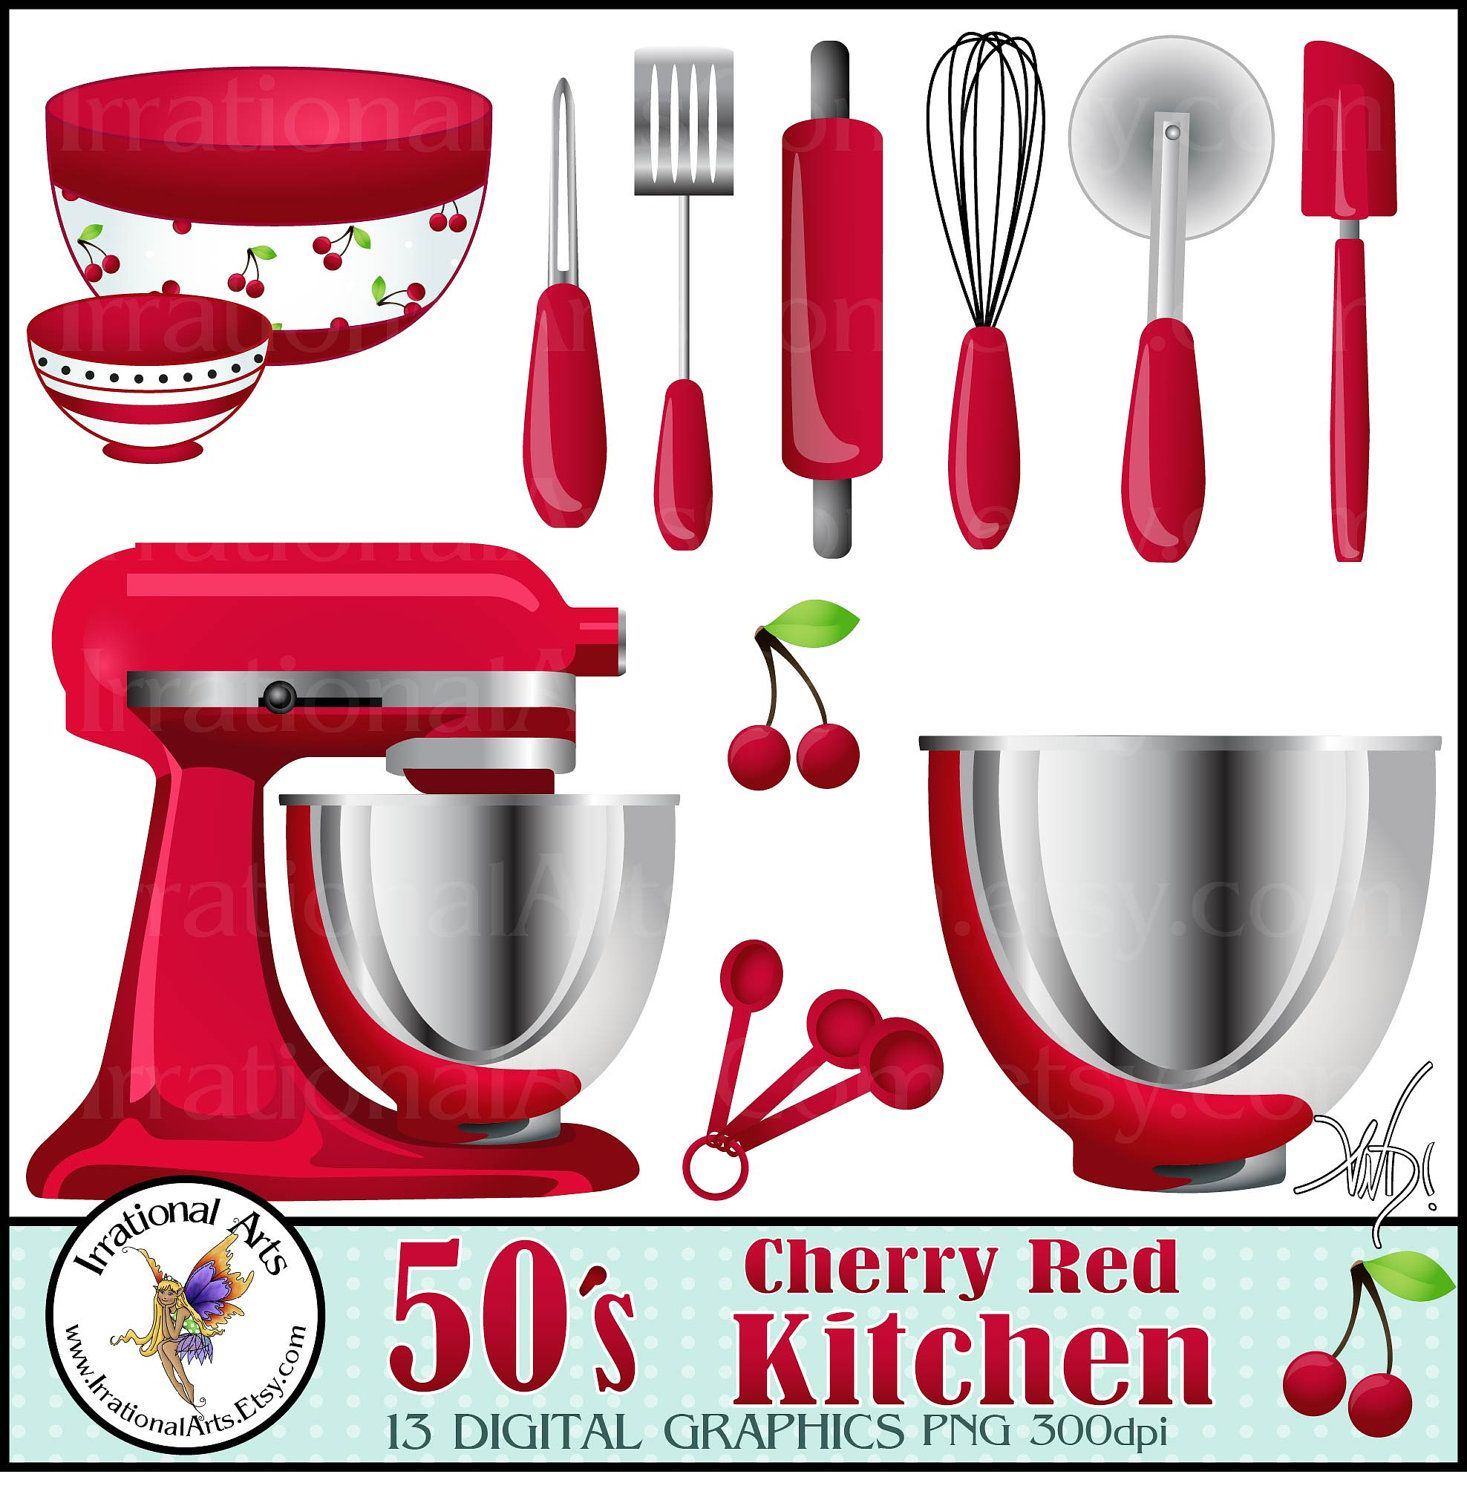 50's Cherry Red Kitchen Digital Clipart Graphics 13